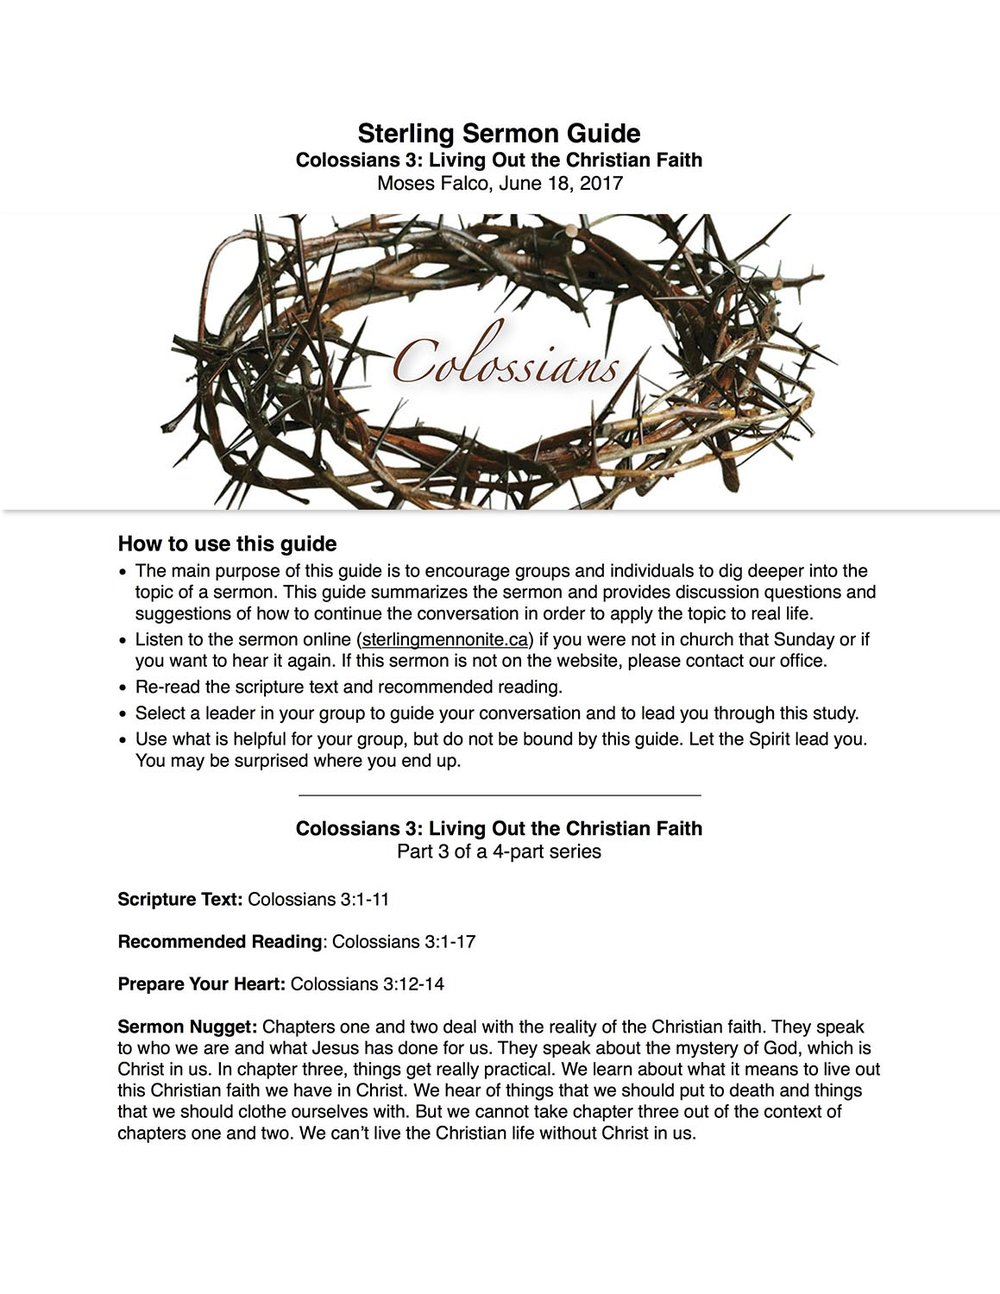 Colossians 3 - Sermon Guide